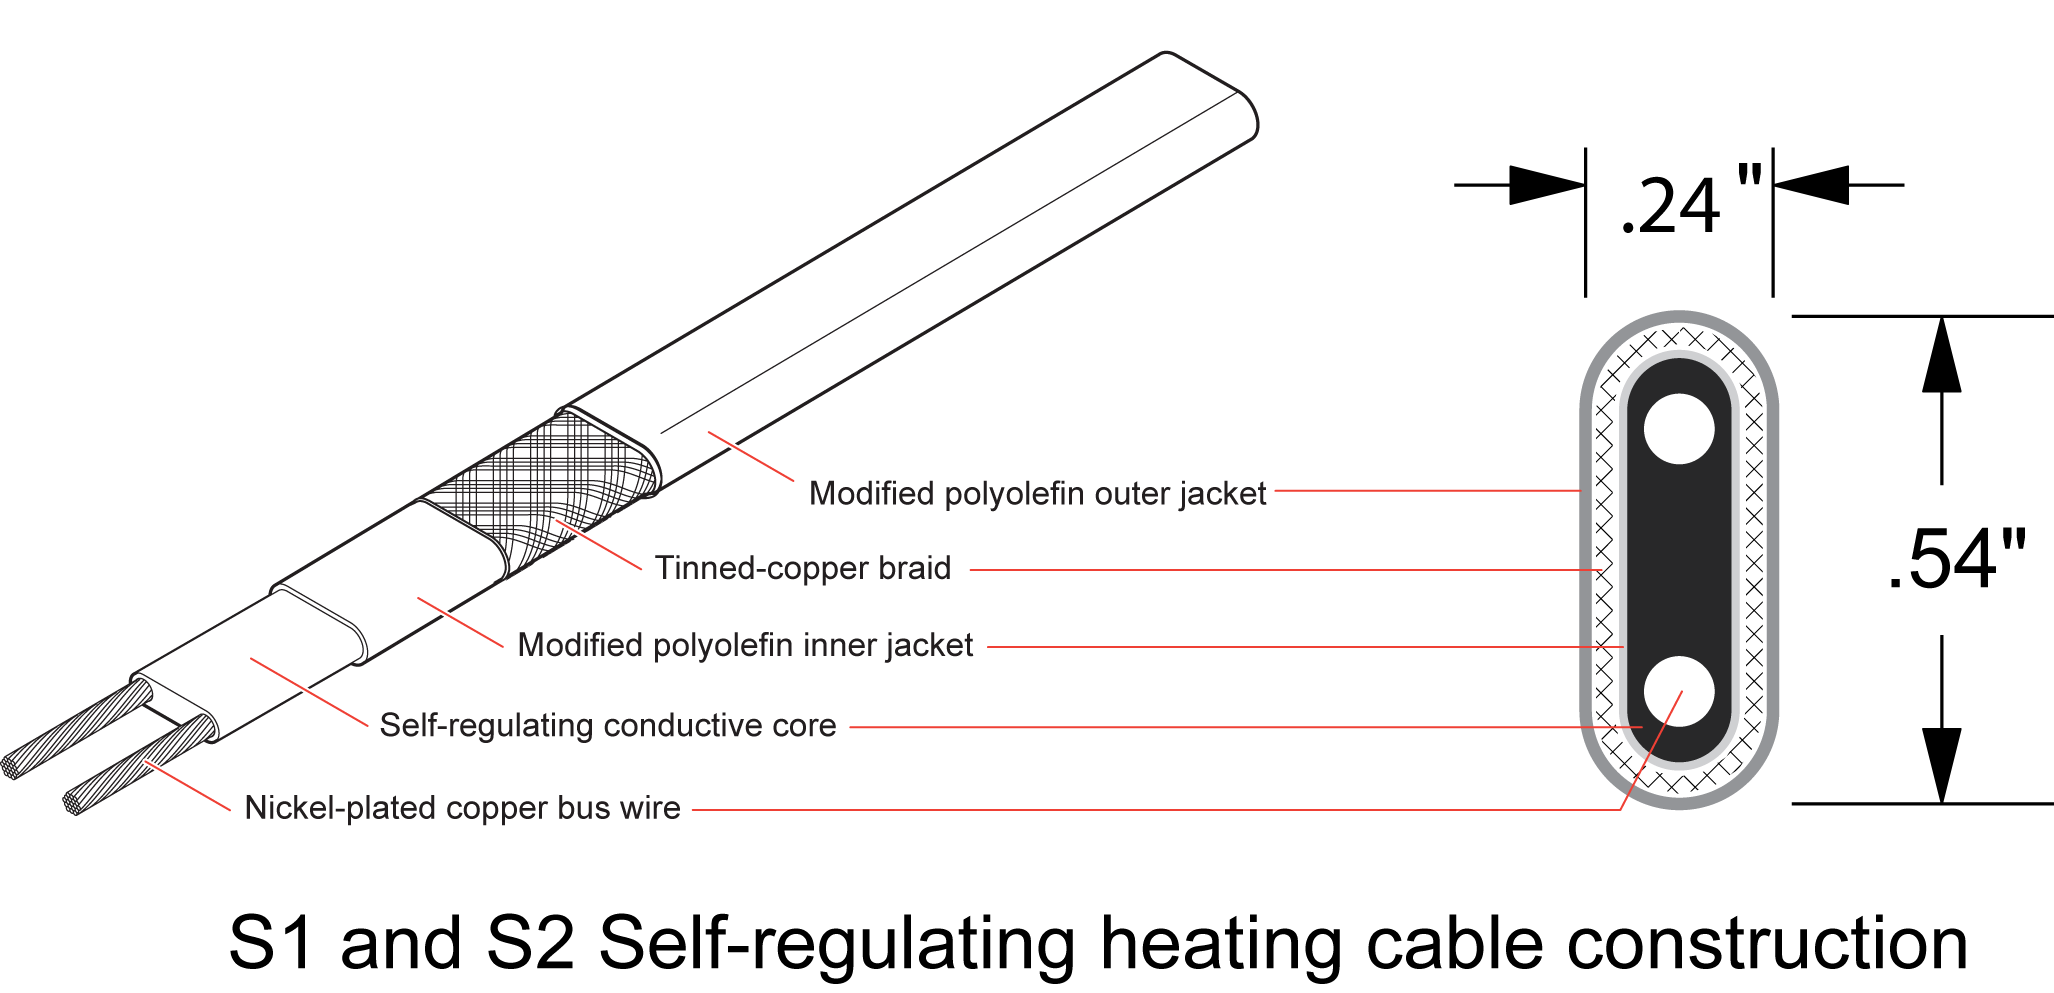 Self-regulating heaters S1 and S2 cable technology prevents ice dams